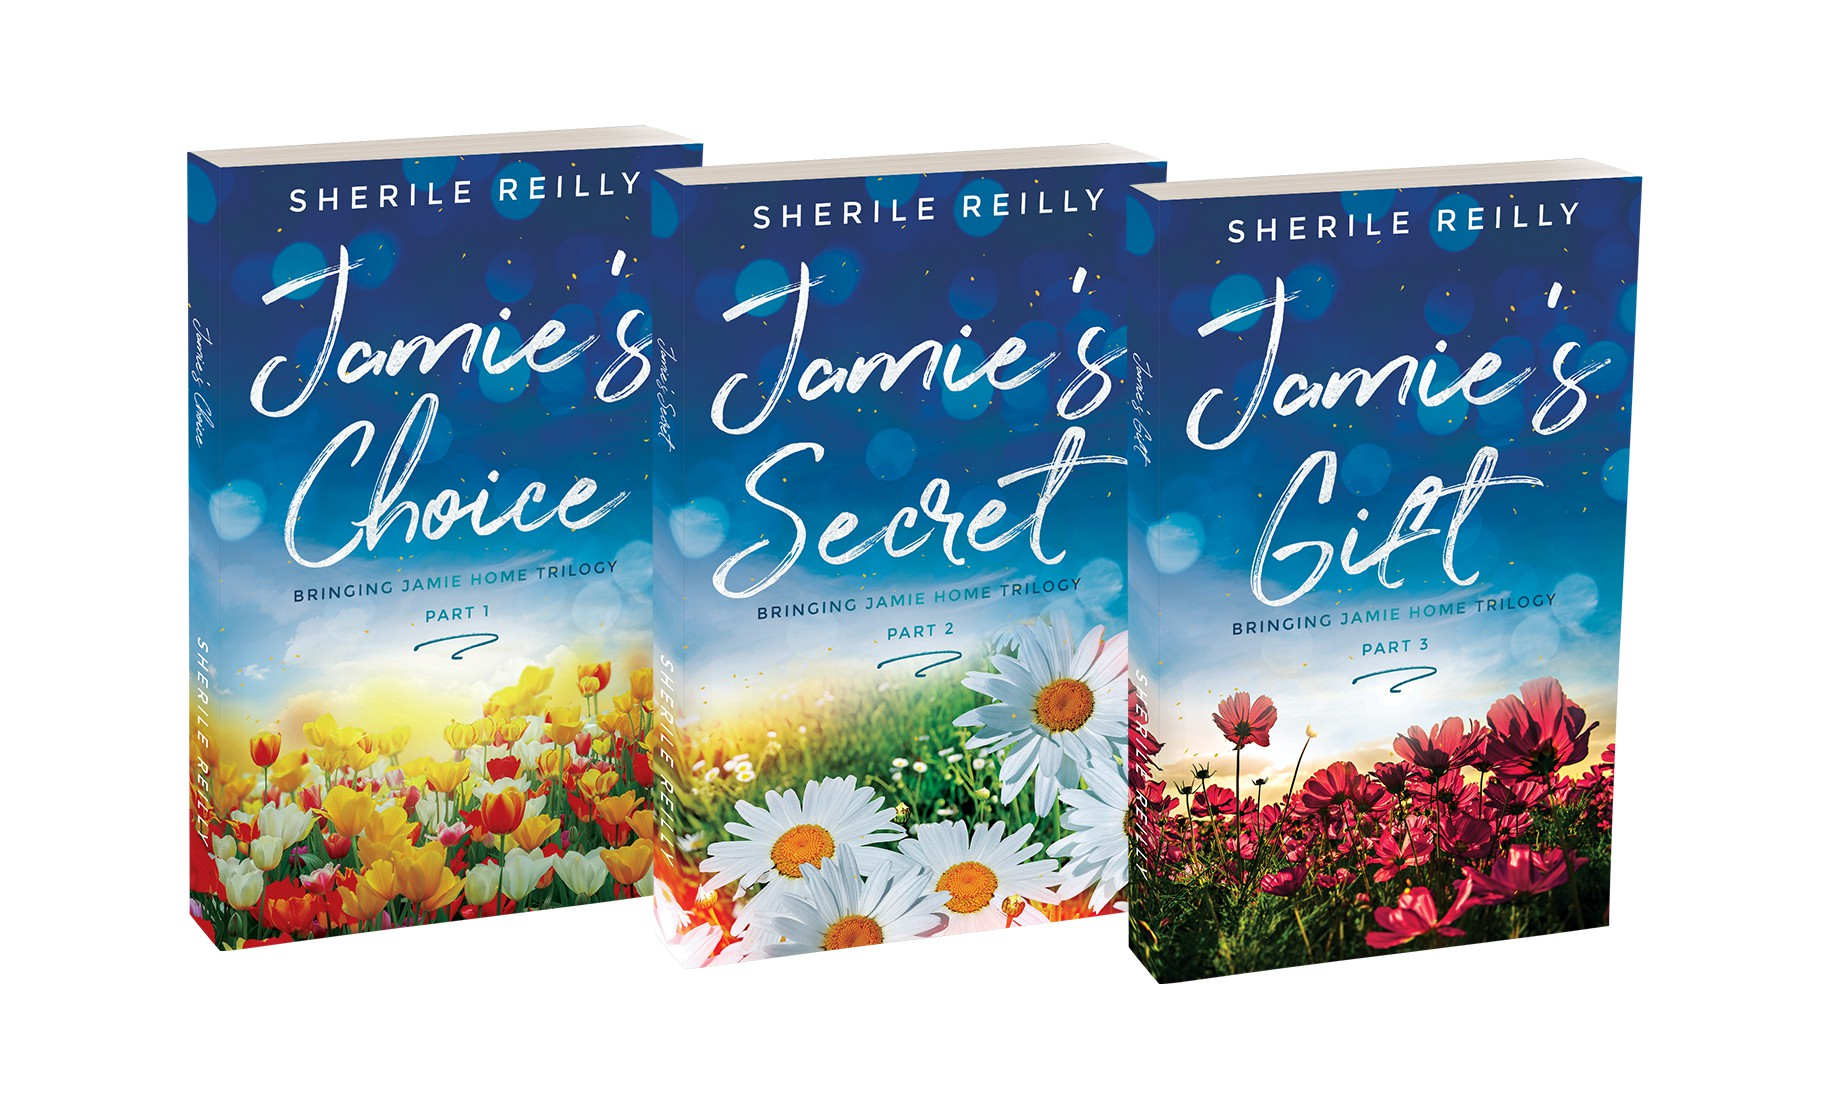 """""""Jamie's Secret"""" and """"Jamie's Gift"""" Book Covers"""